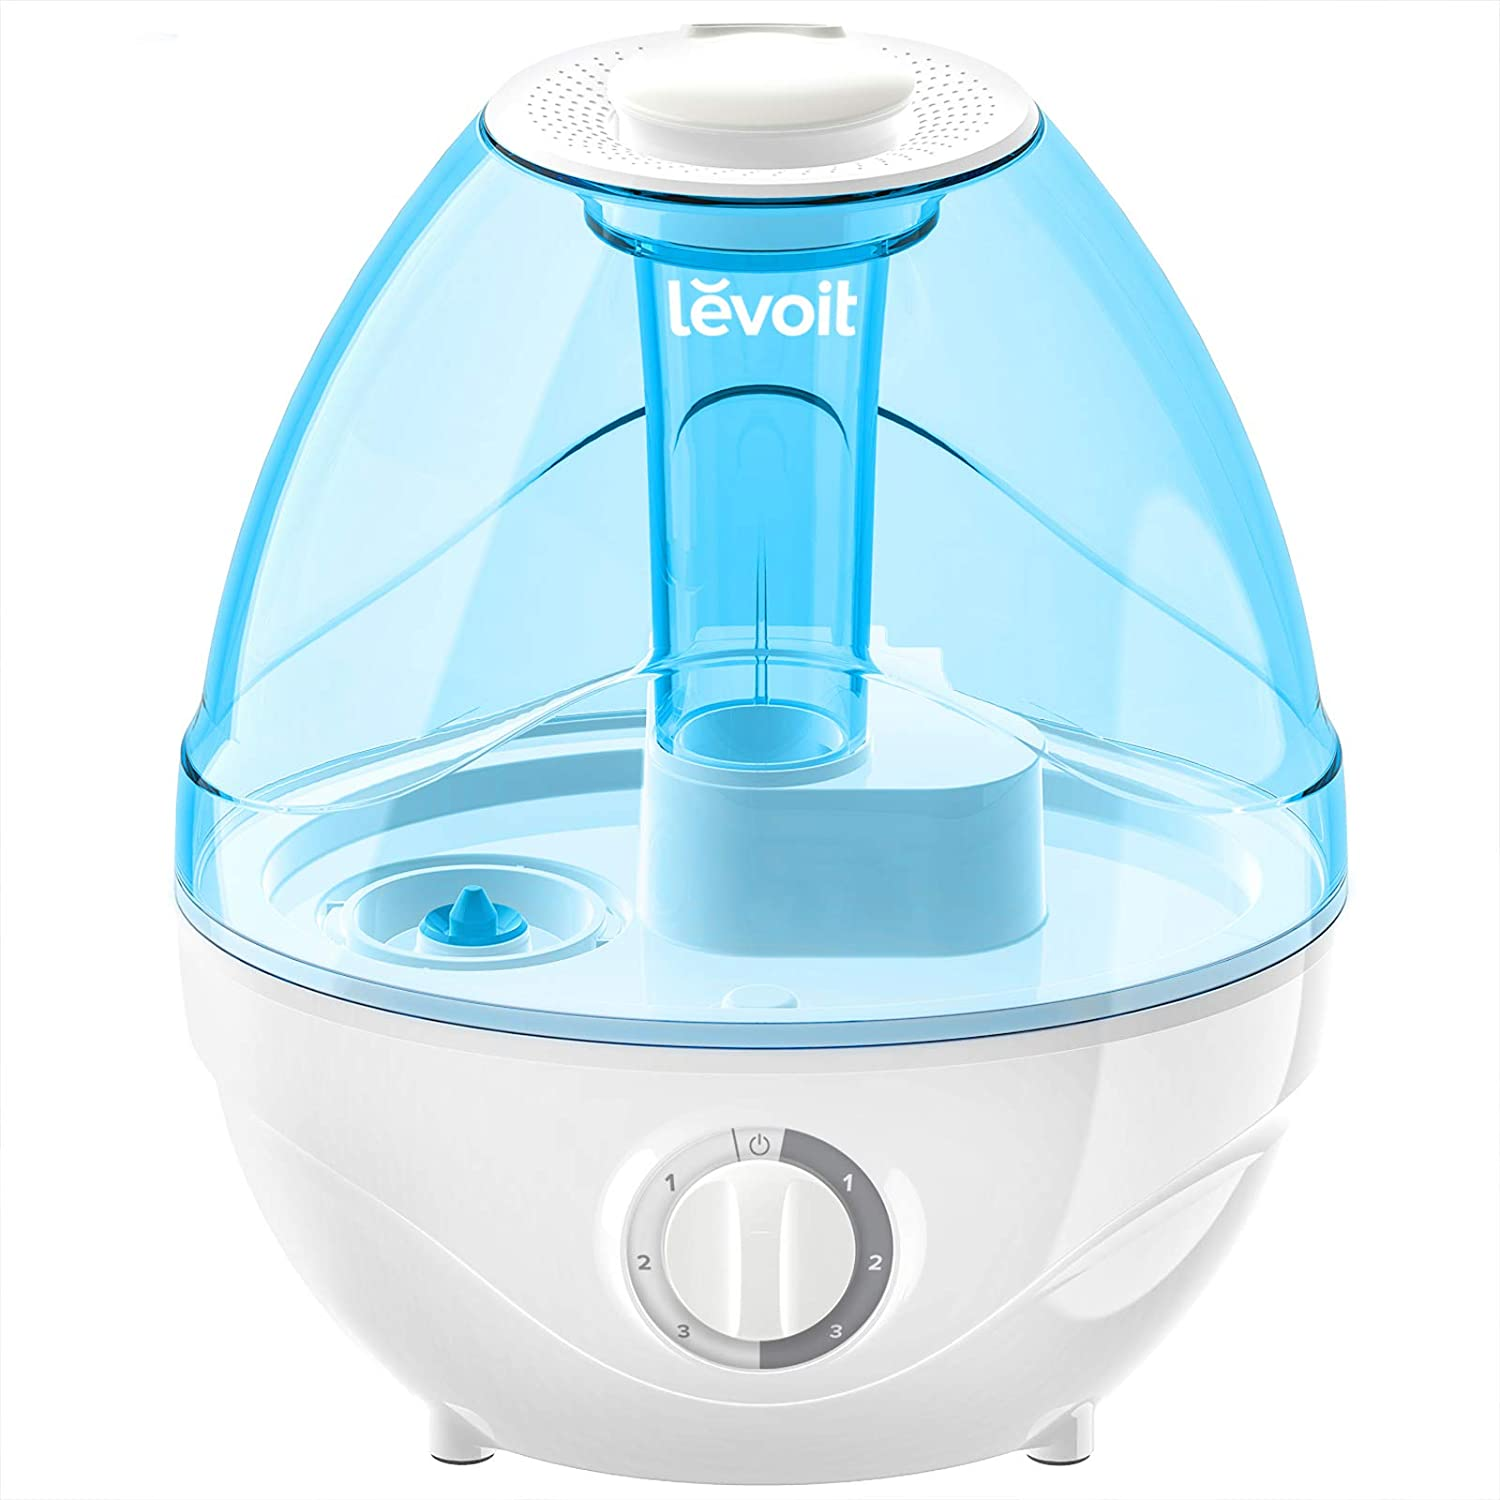 Levoit Cool Mist <br>Humidifier for Baby